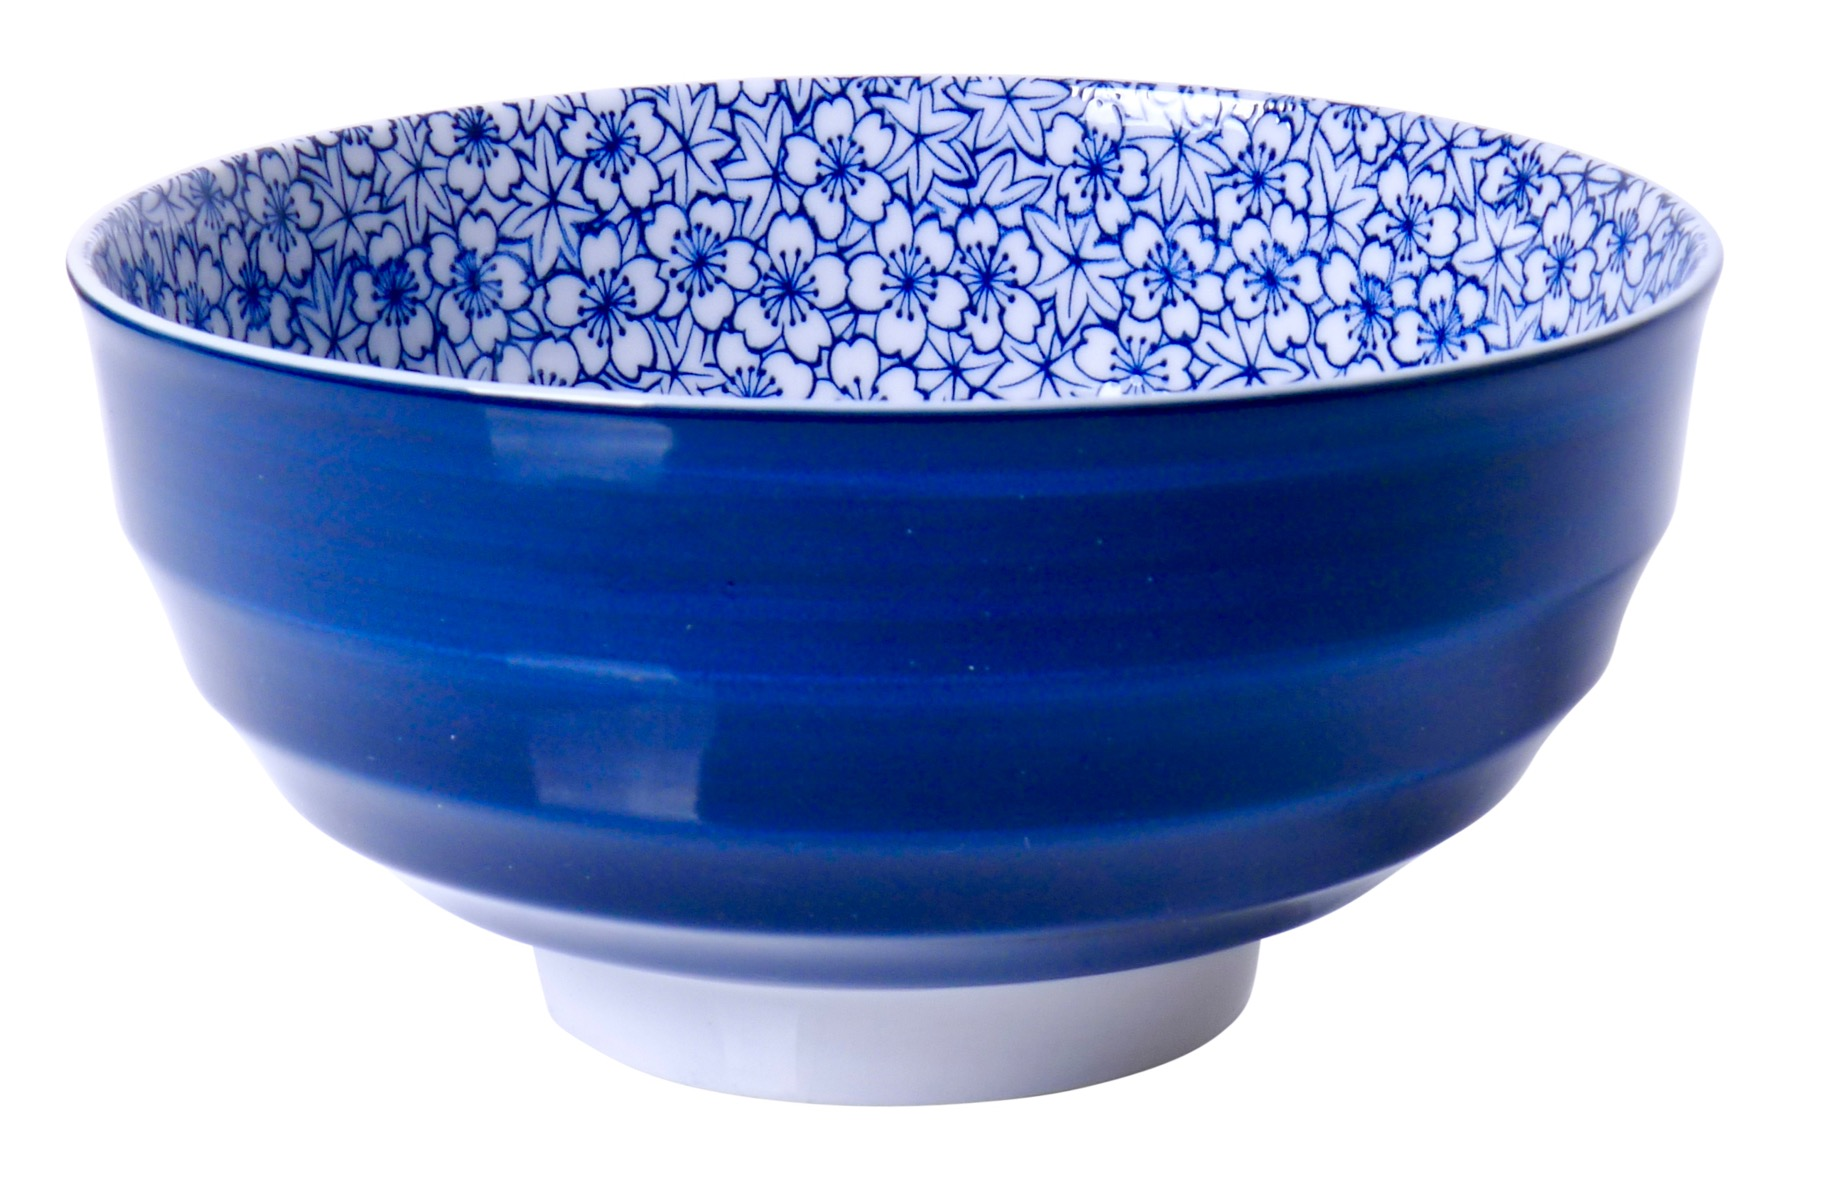 Image of Porcelain Bowls Blue with Floral, 6.75 x 3.25-Inch